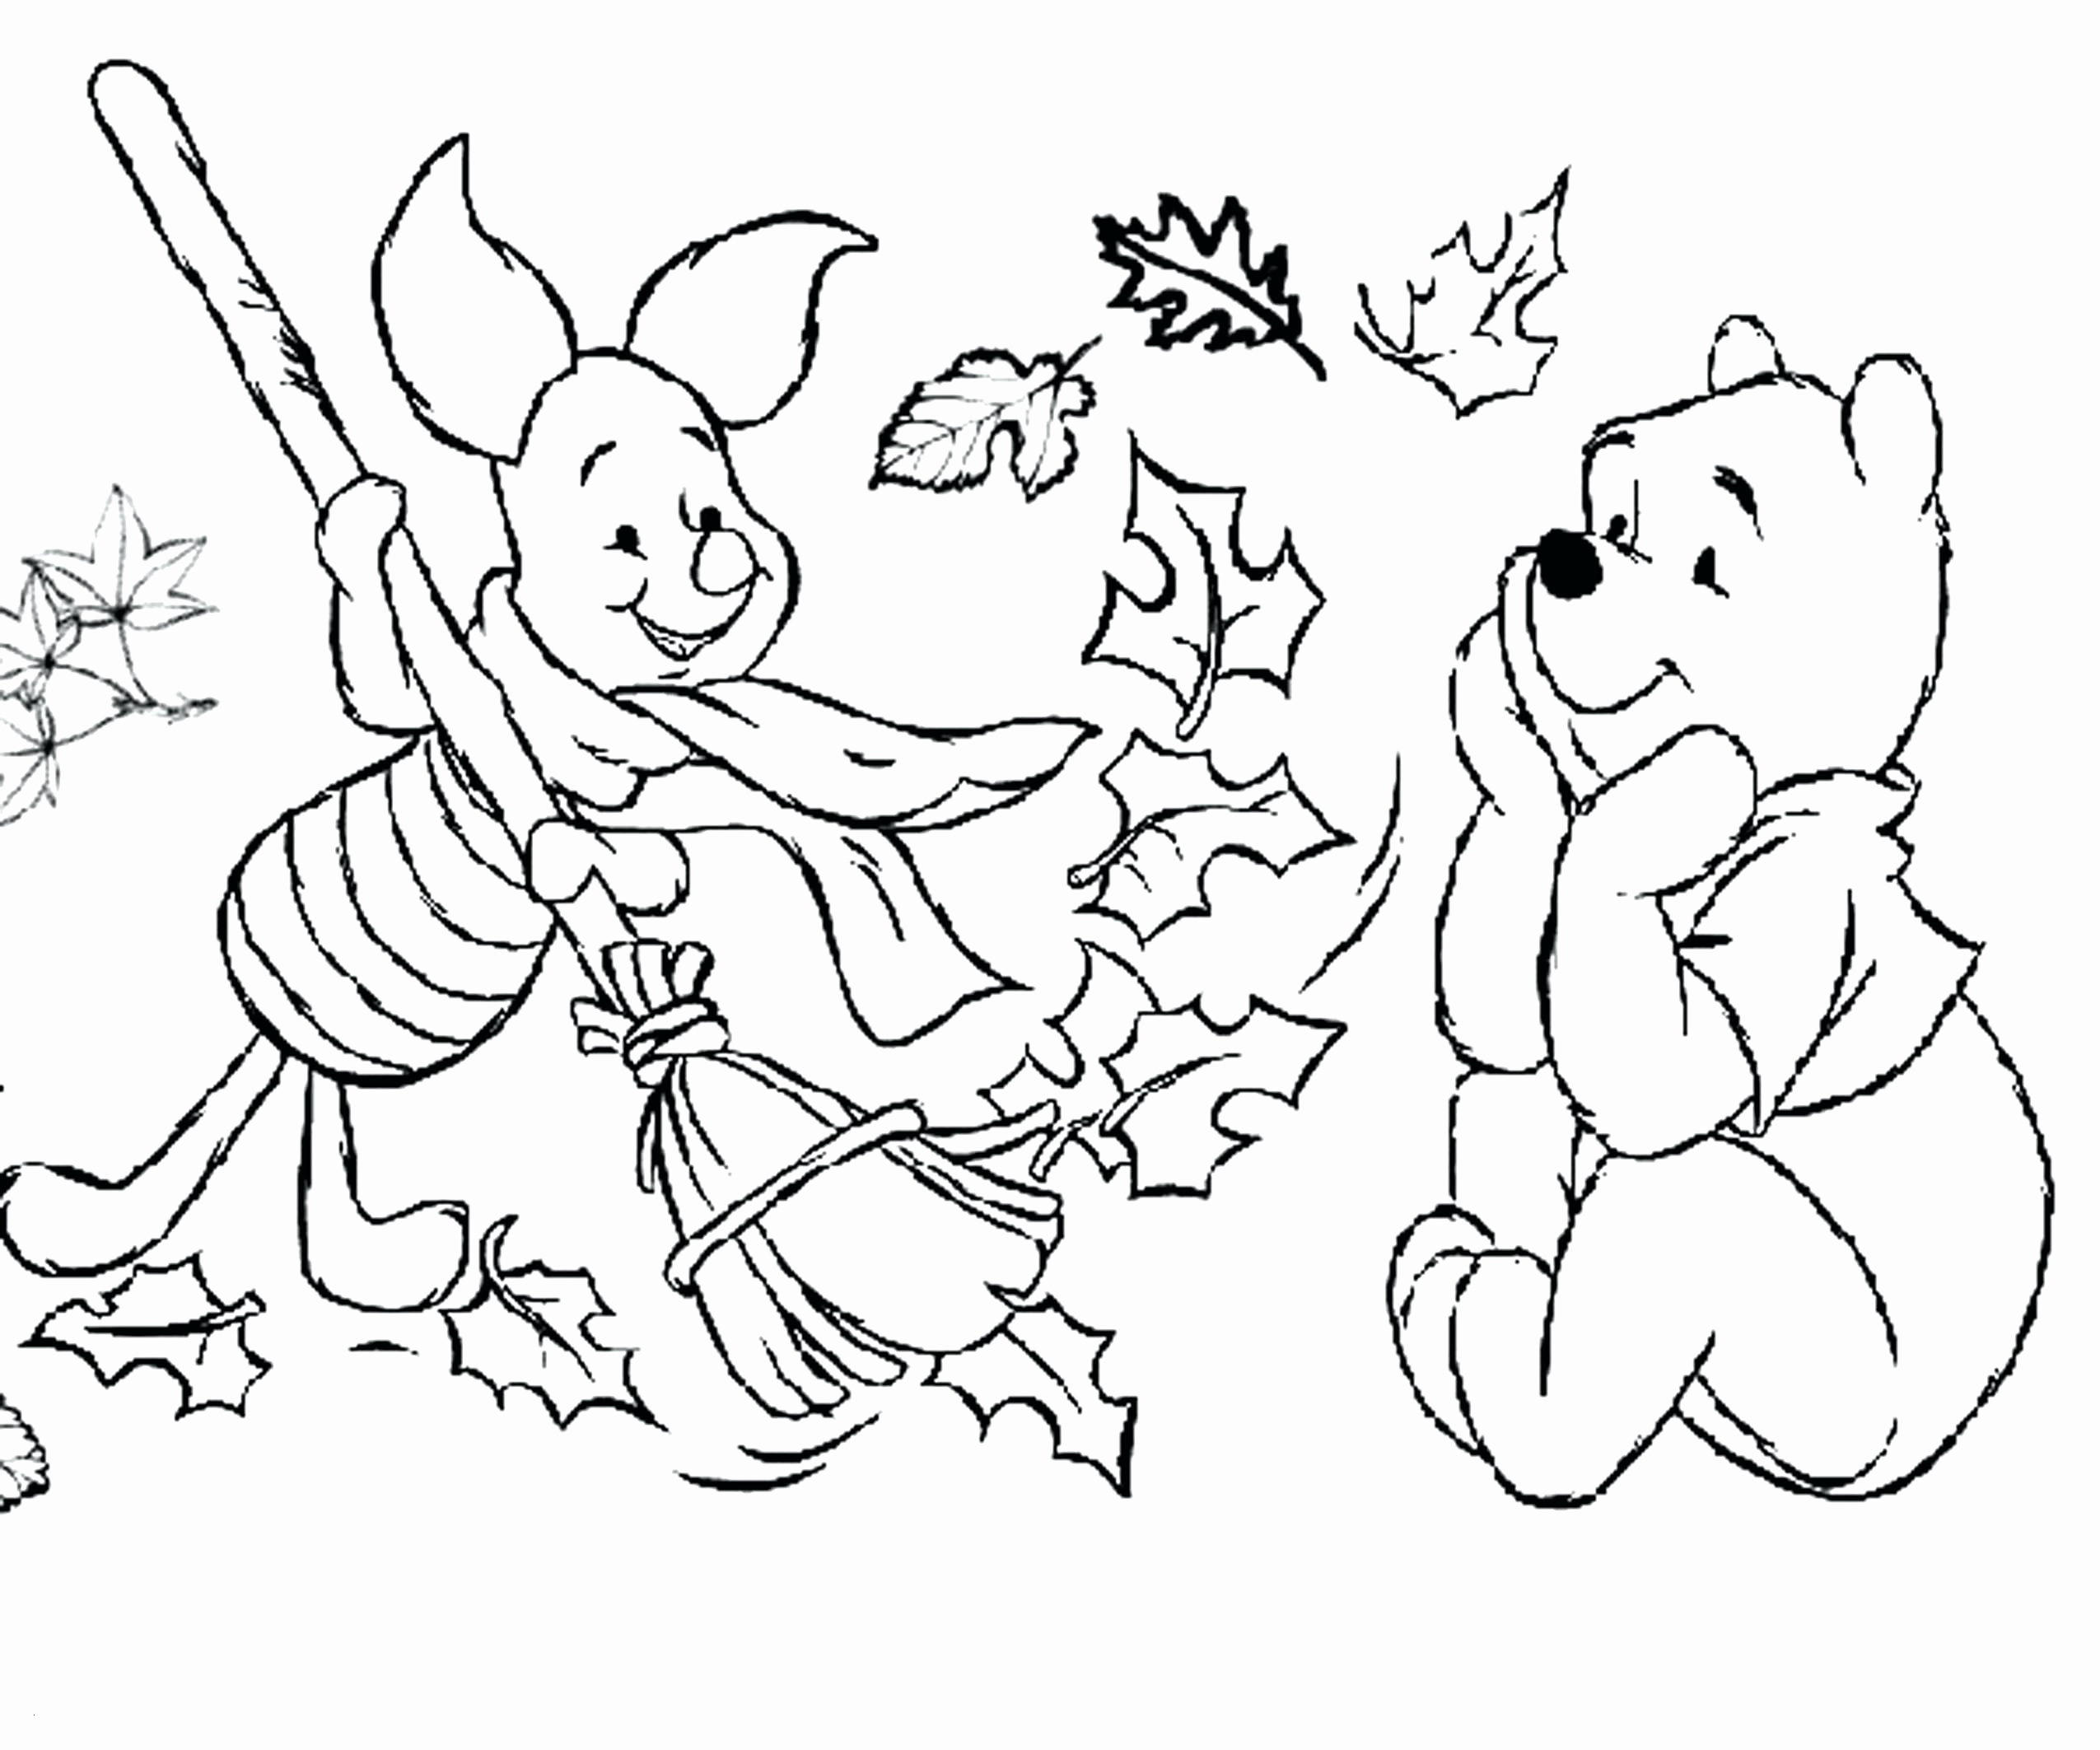 Hiking Coloring Pages  Download 14h - To print for your project